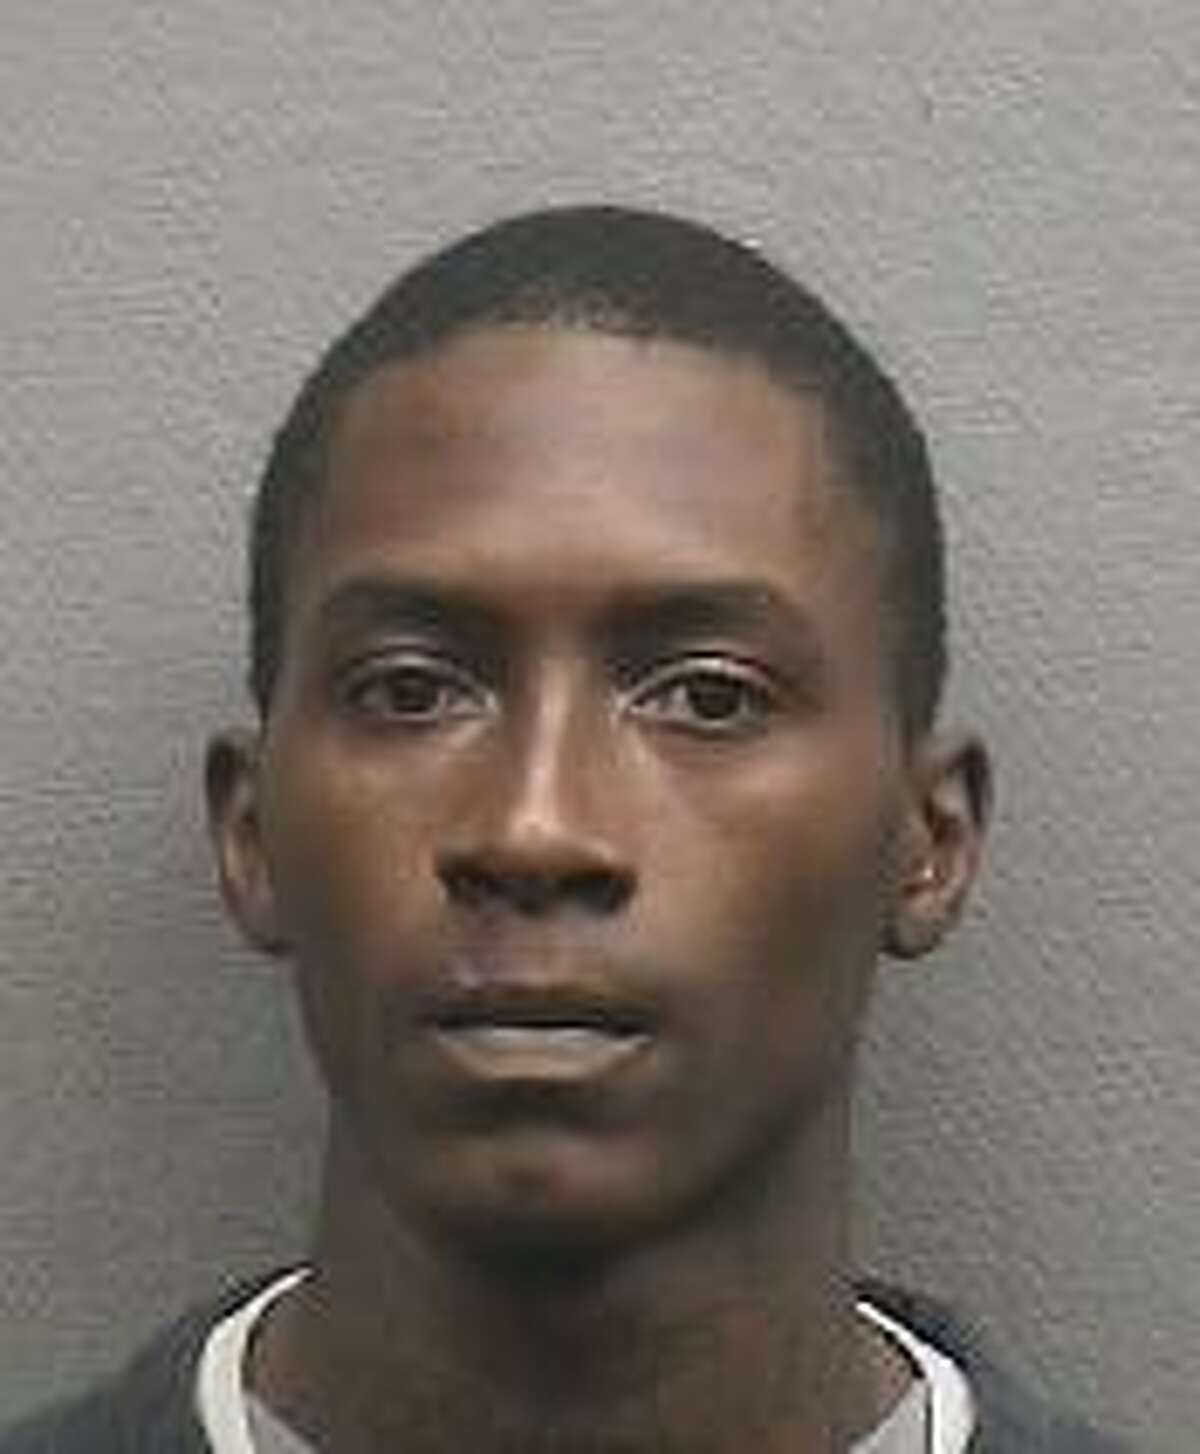 Treveon Lacy, 19, has been charged in the March 19, 2015 murder of Joseph Rogers in Houston.